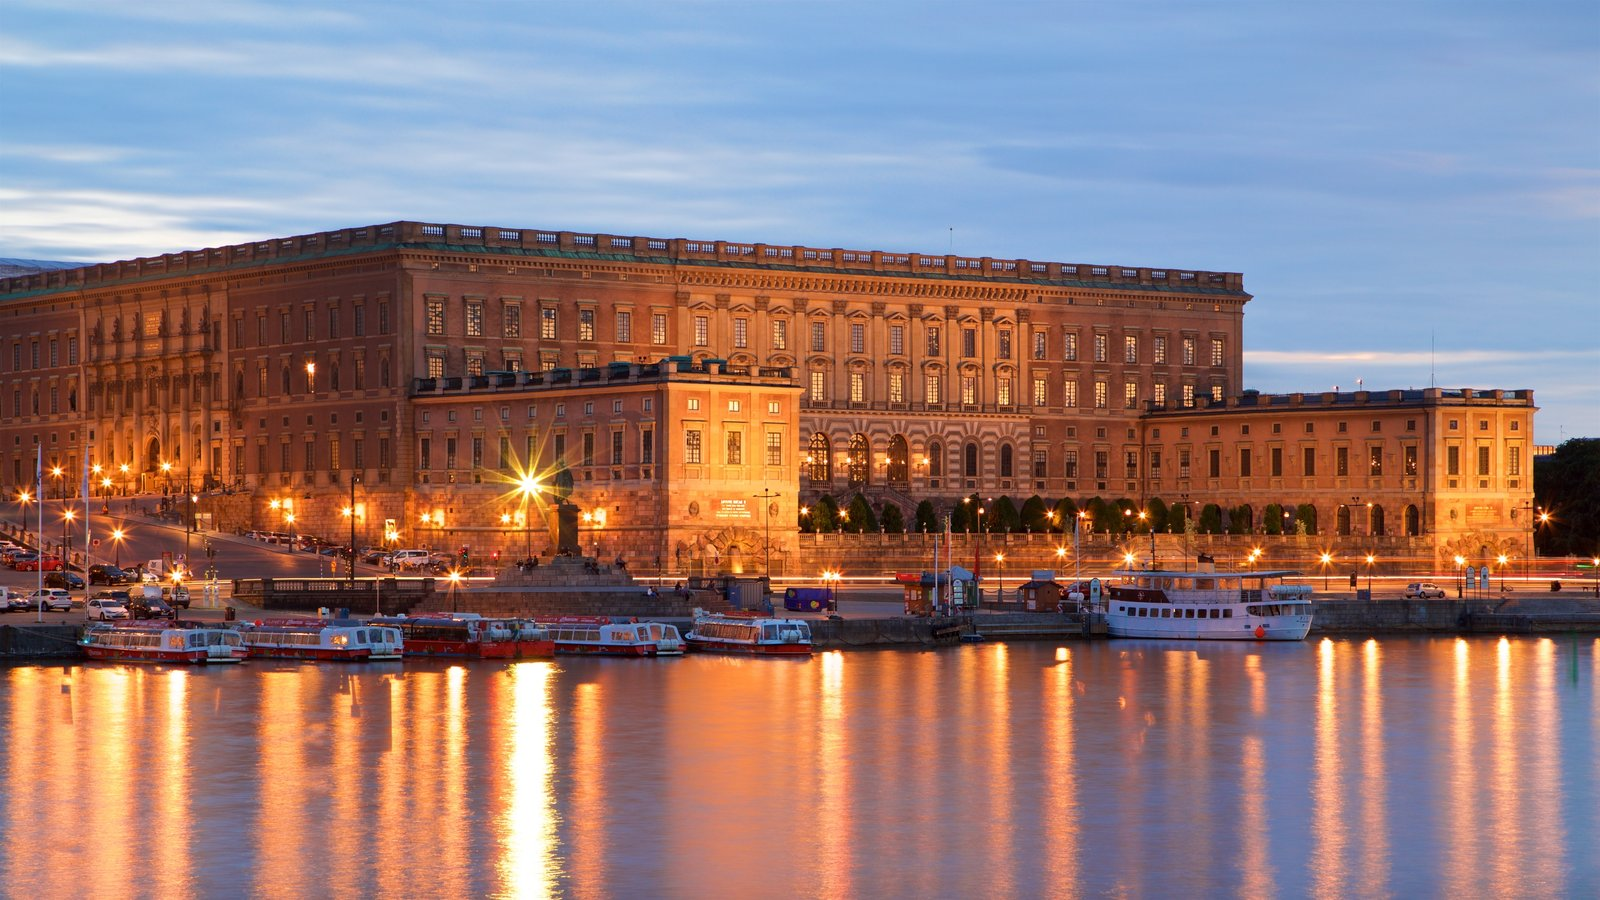 Stockholm Palace showing heritage architecture and a bay or harbour